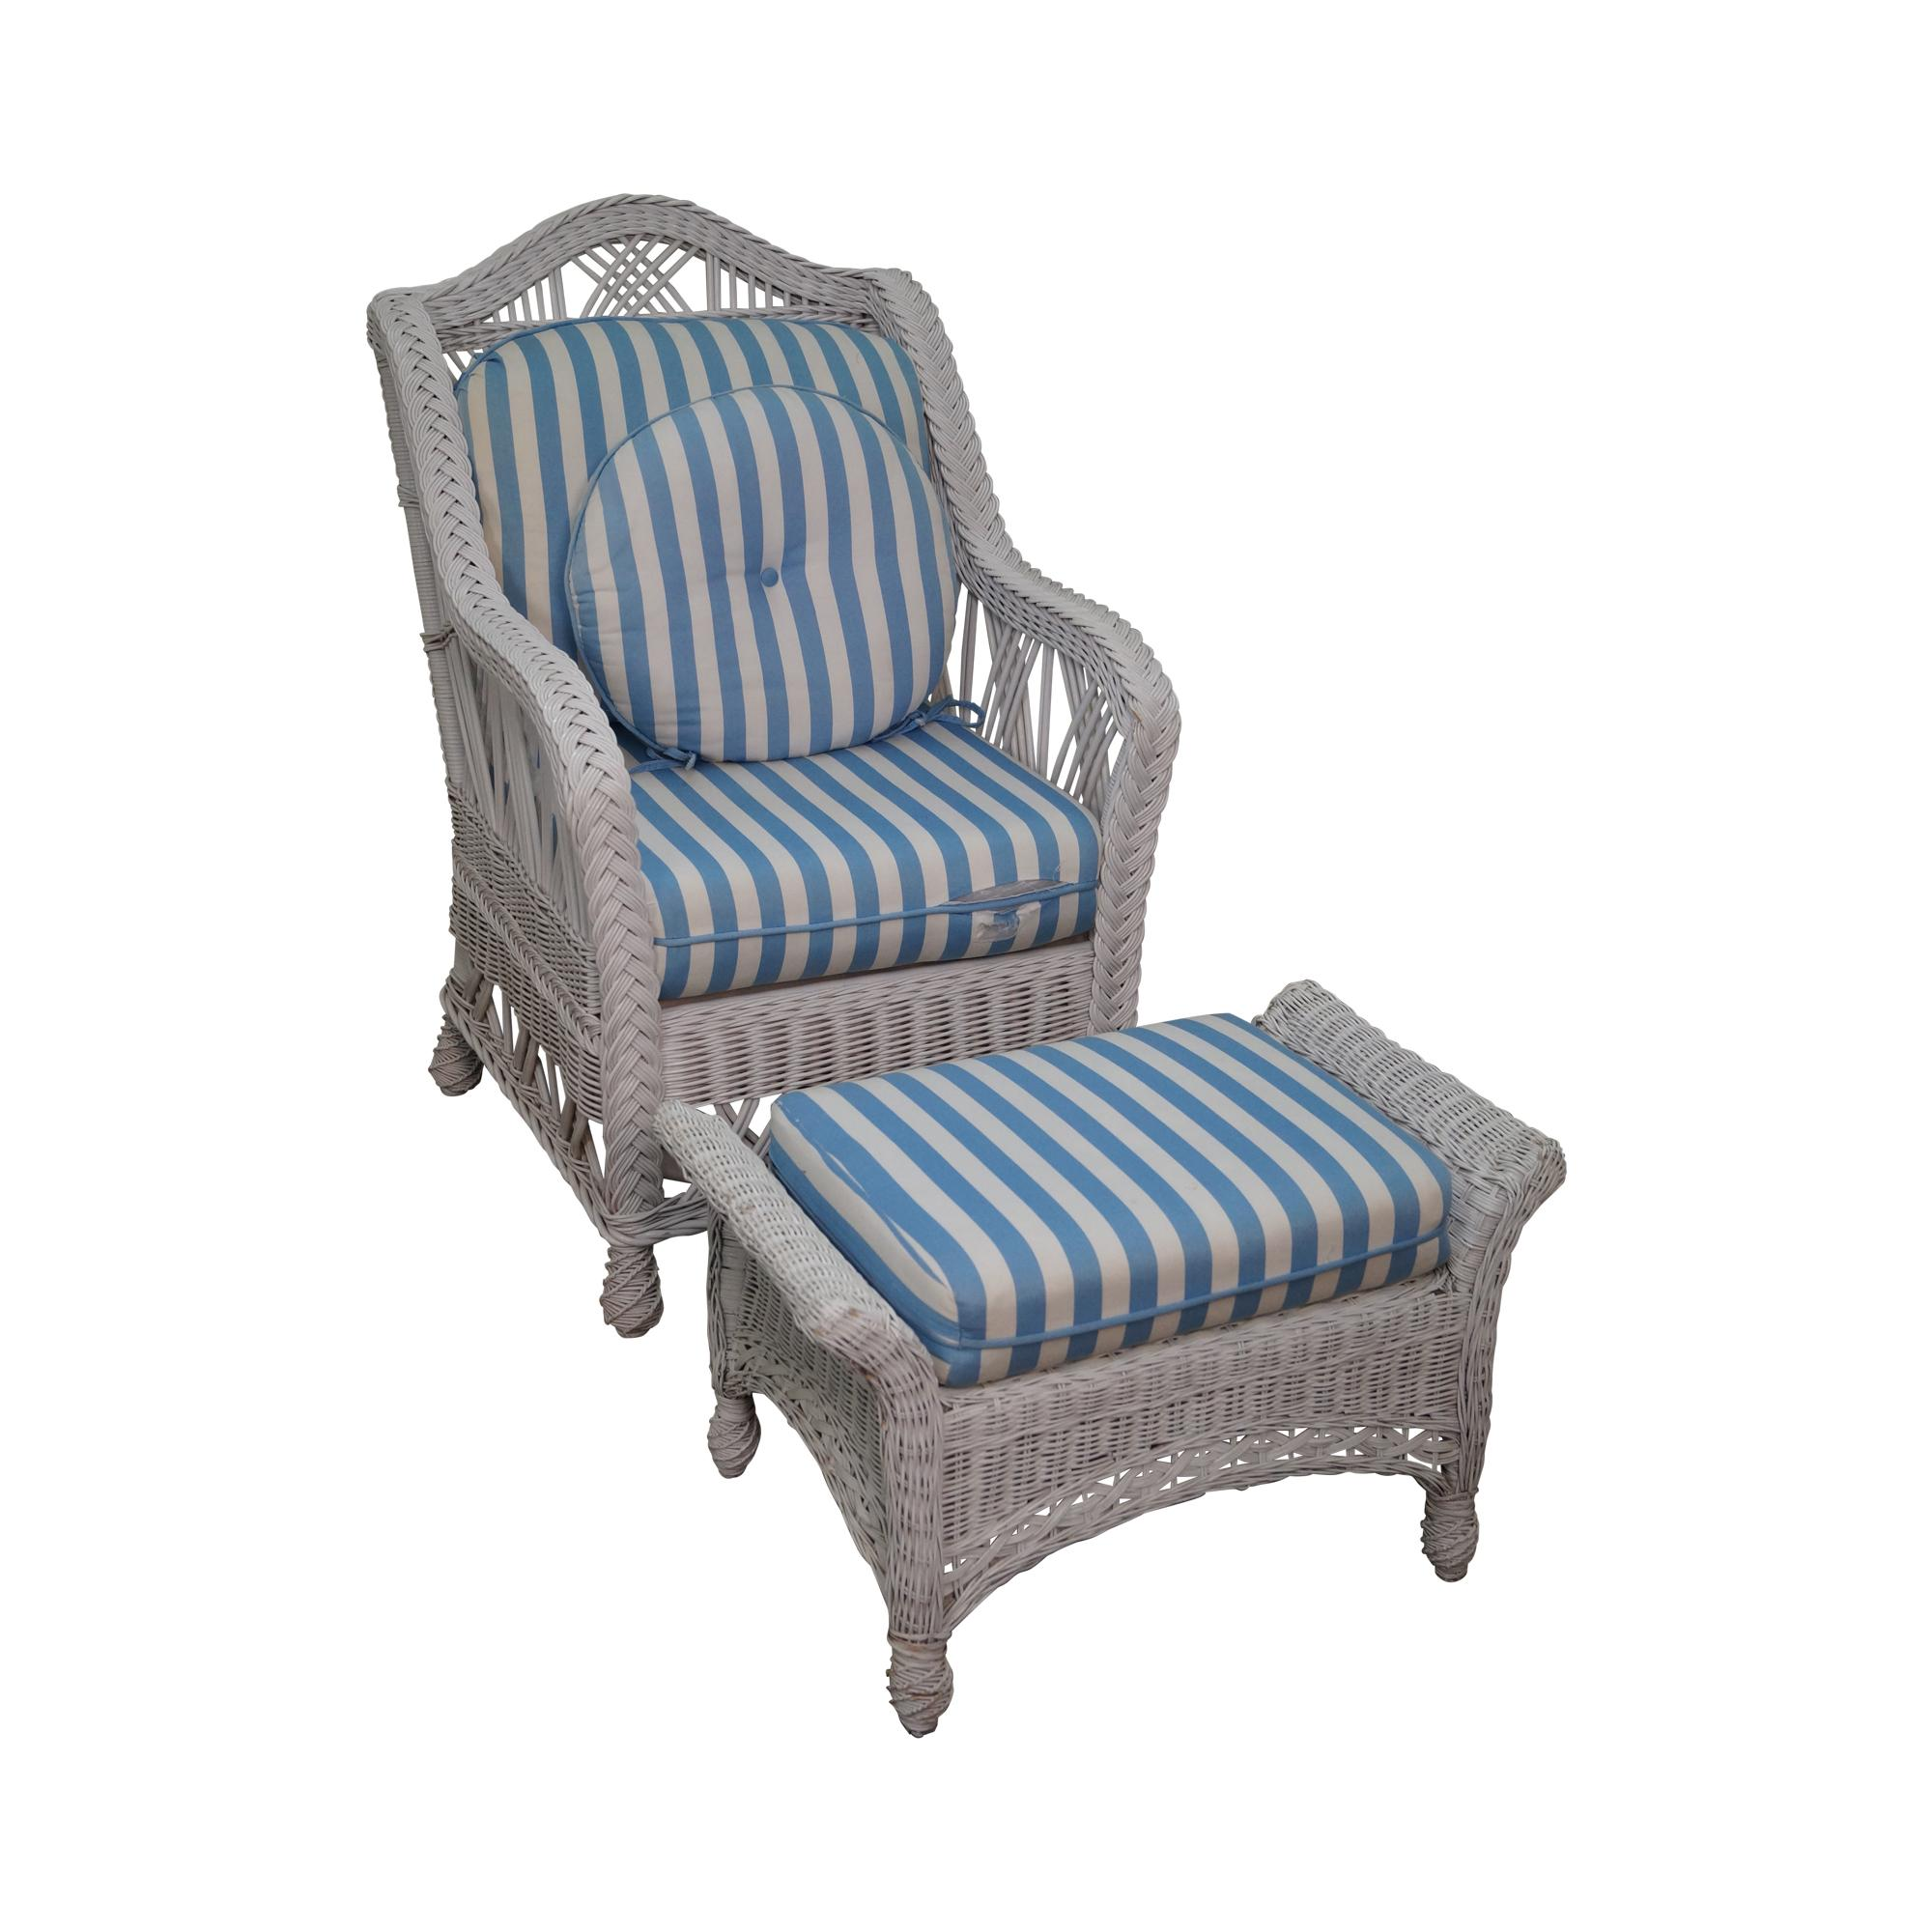 victorian style white wicker lounge chair with ottoman chairish. Black Bedroom Furniture Sets. Home Design Ideas